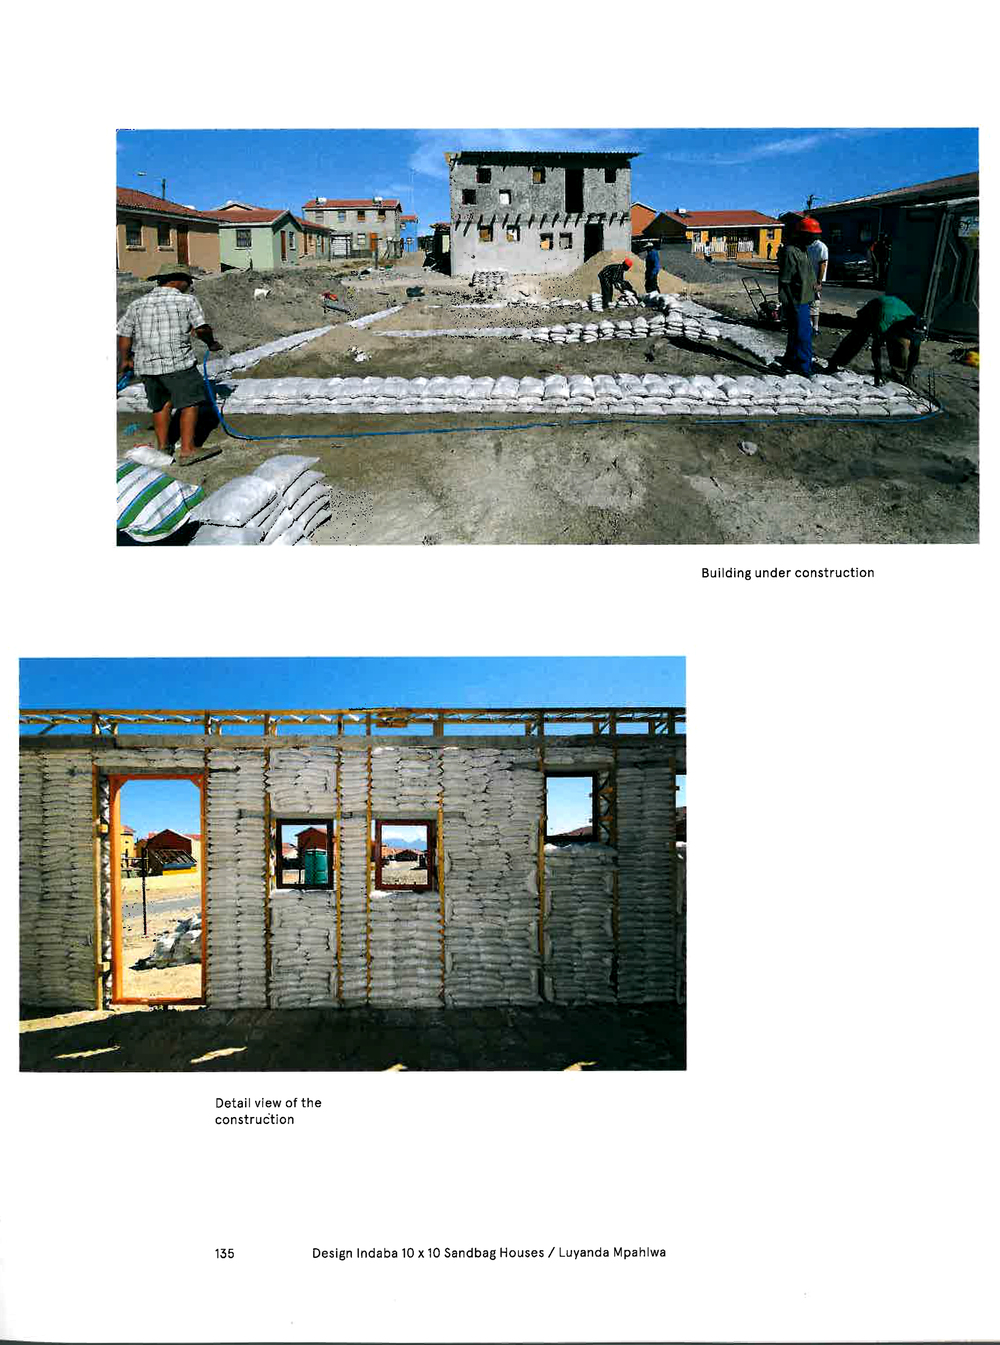 Afritecture page 6 - low res.jpg